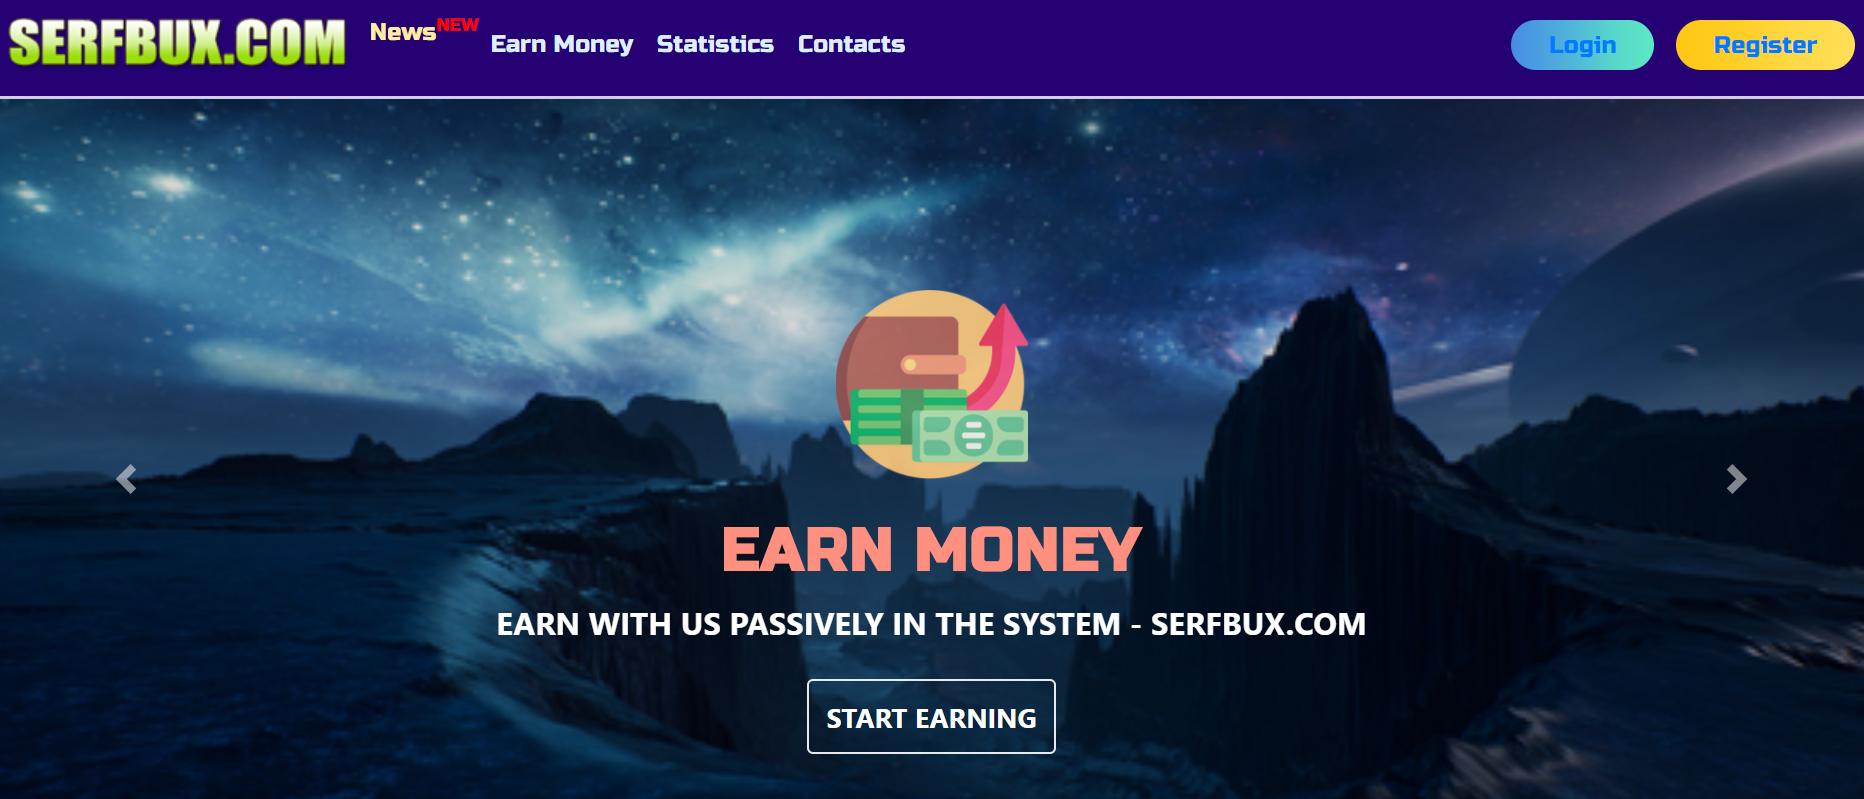 serfbux.com Review – Scam or Paying PTC?